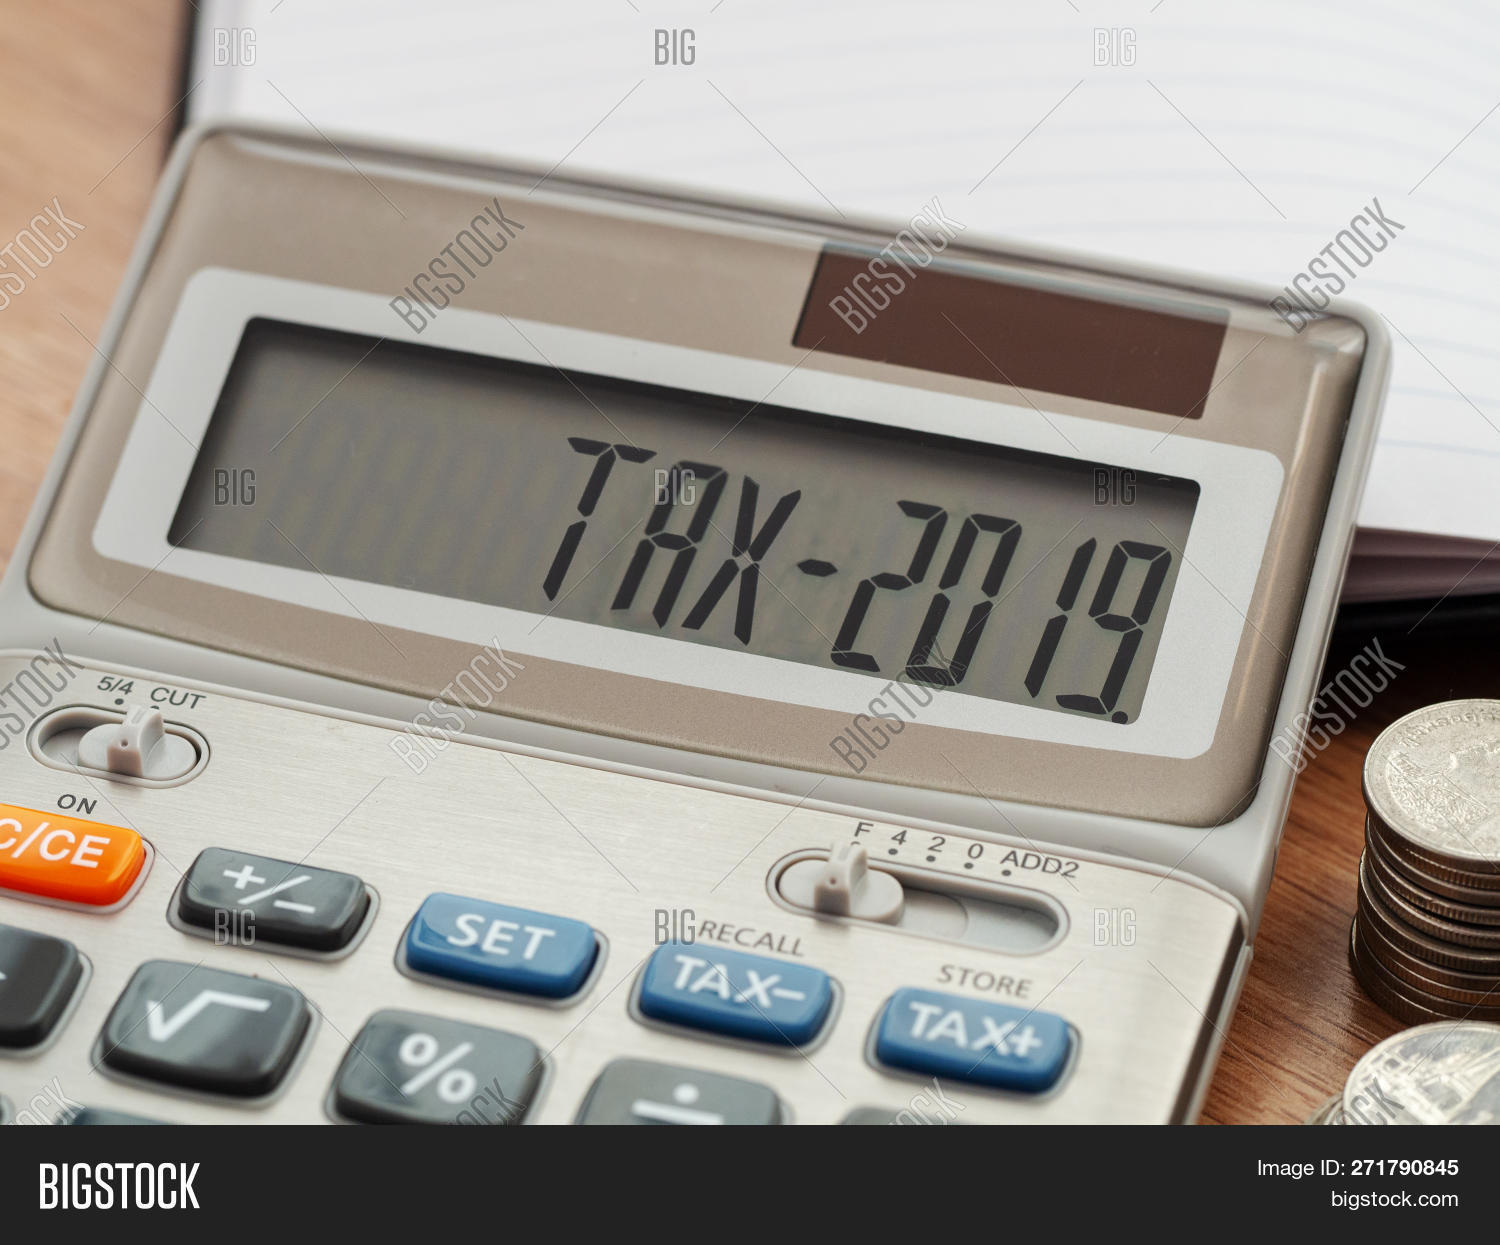 17,2019,Pay,accounting,background,balance,business,calculator,calendar,coin,concept,date,day,deadline,document,due,event,federal,file,filing,finance,financial,form,government,income,law,money,note,number,paper,payment,plan,reform,refund,reminder,return,season,service,tax,taxation,taxes,time,w9,word,work,year